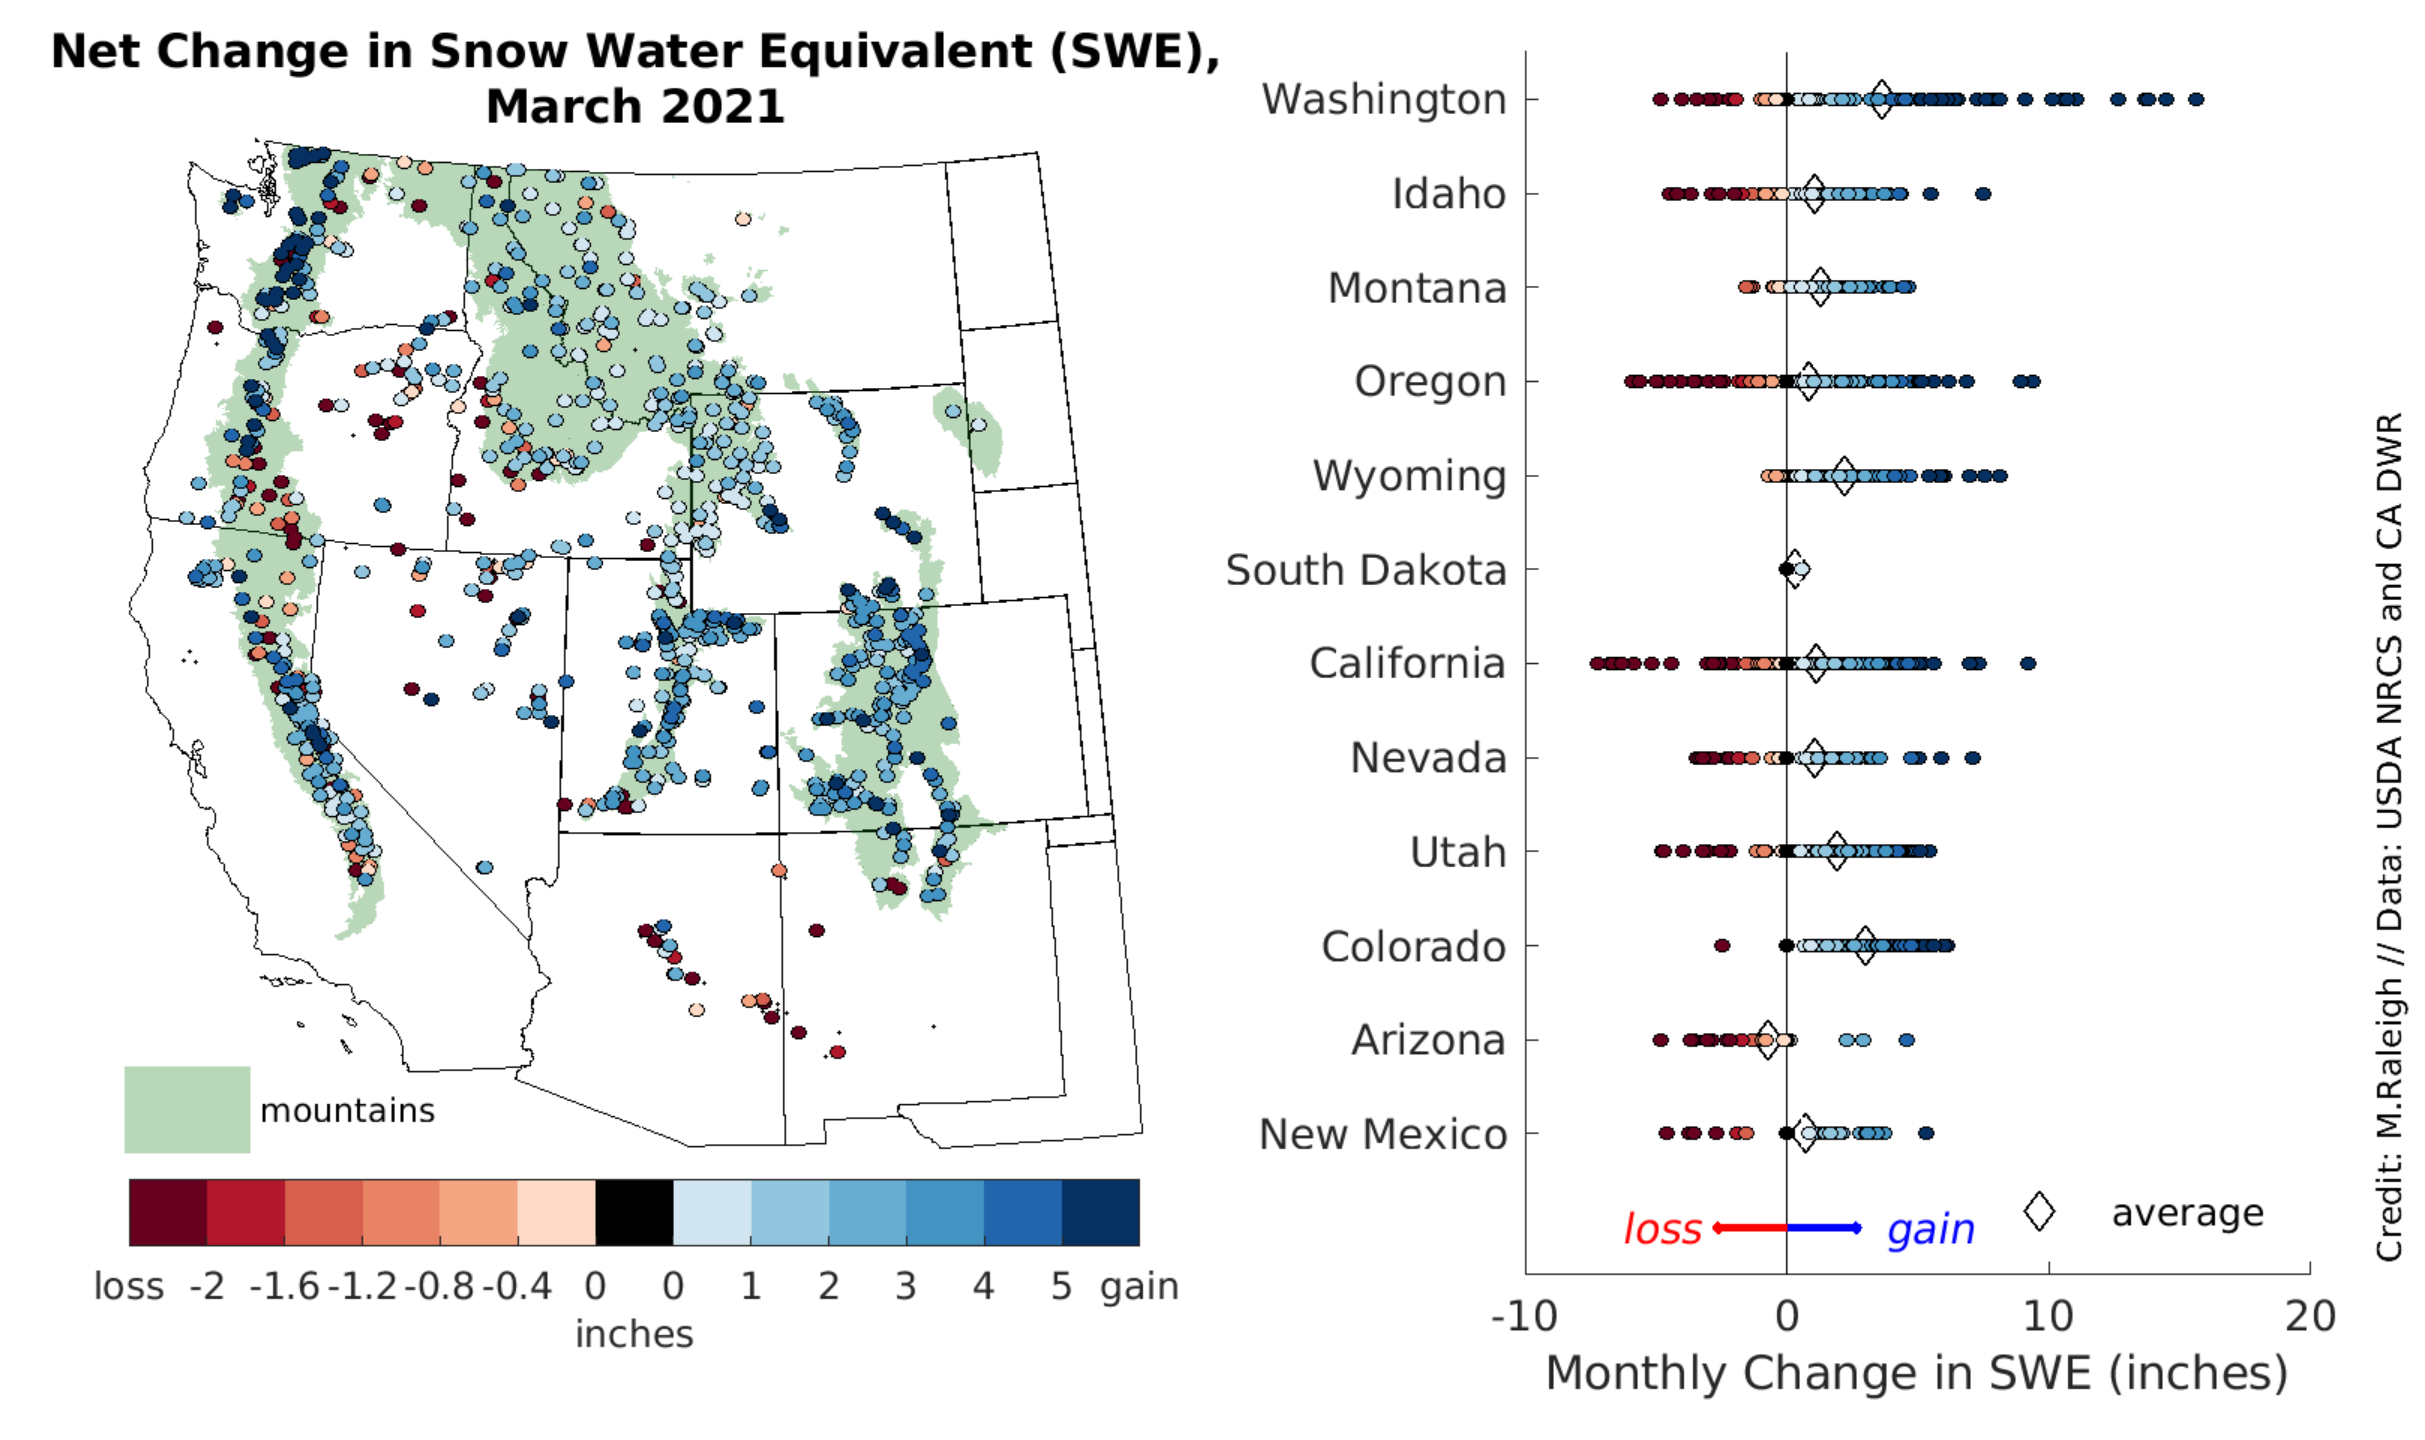 The left map shows the net change in snow water equivalent (SWE) in inches during March 2021; The right chart shows the monthly change in SWE at the stations in each state